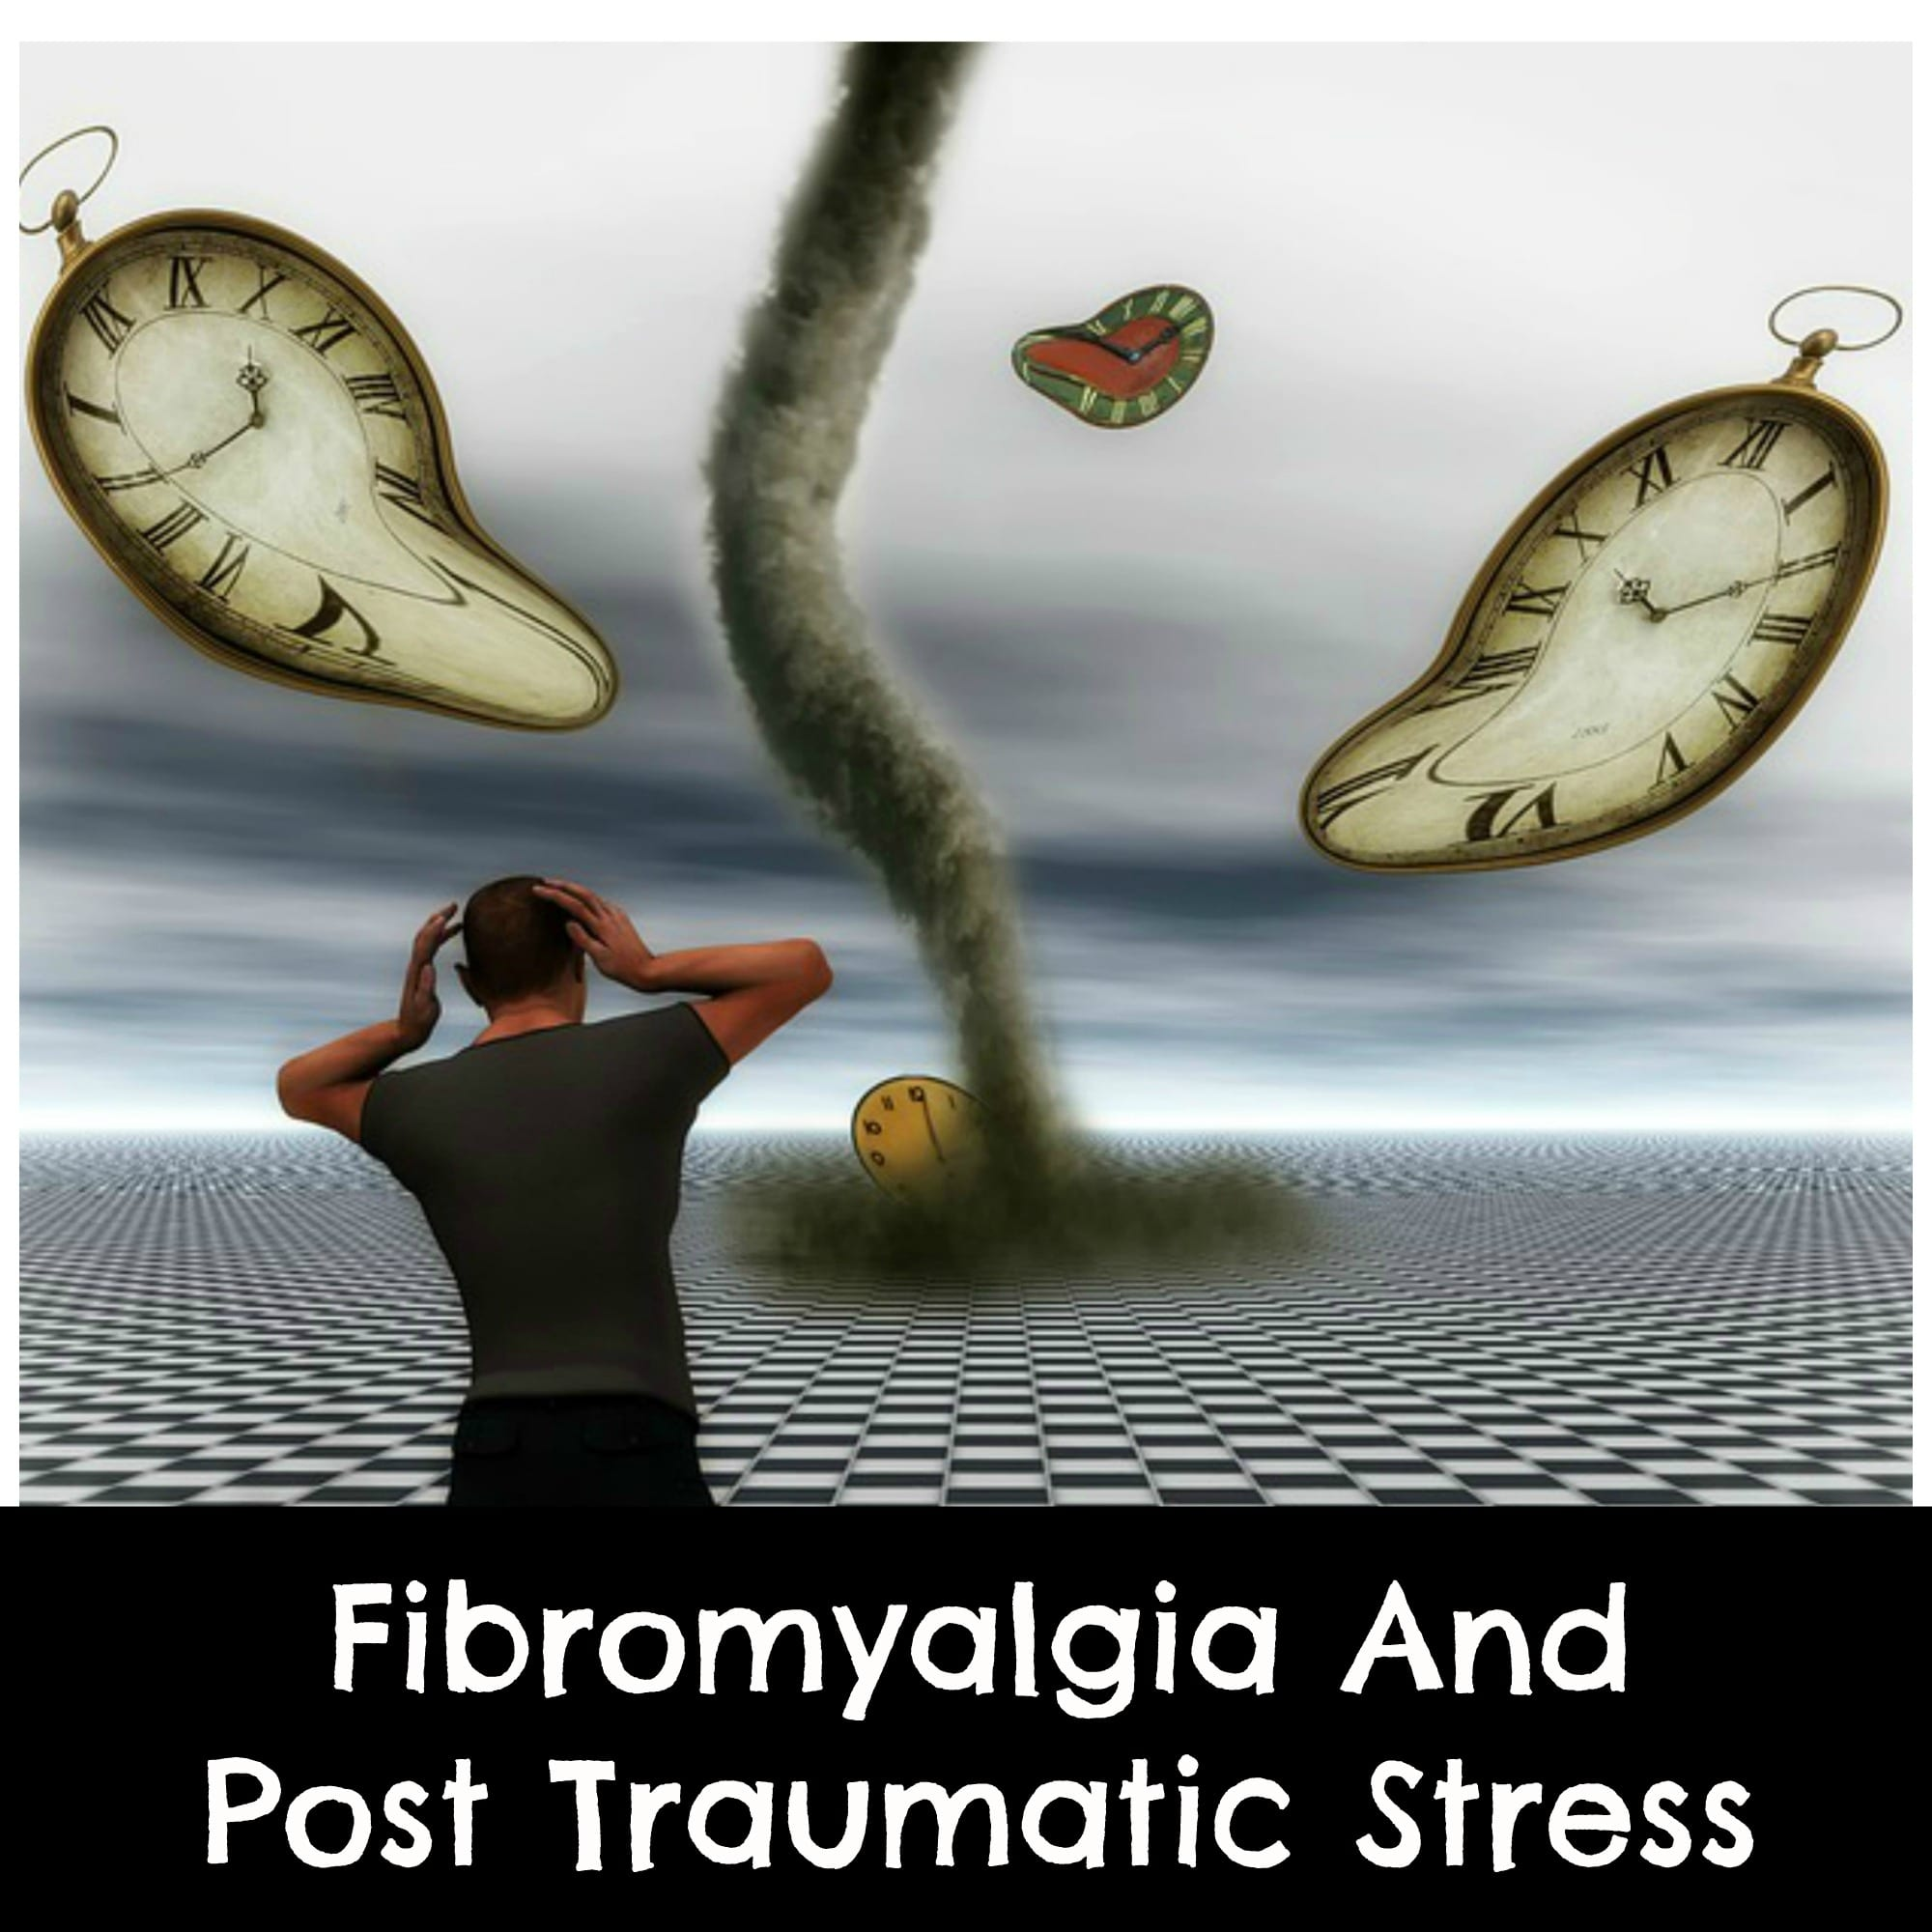 are fibromyalgia and ptsd related